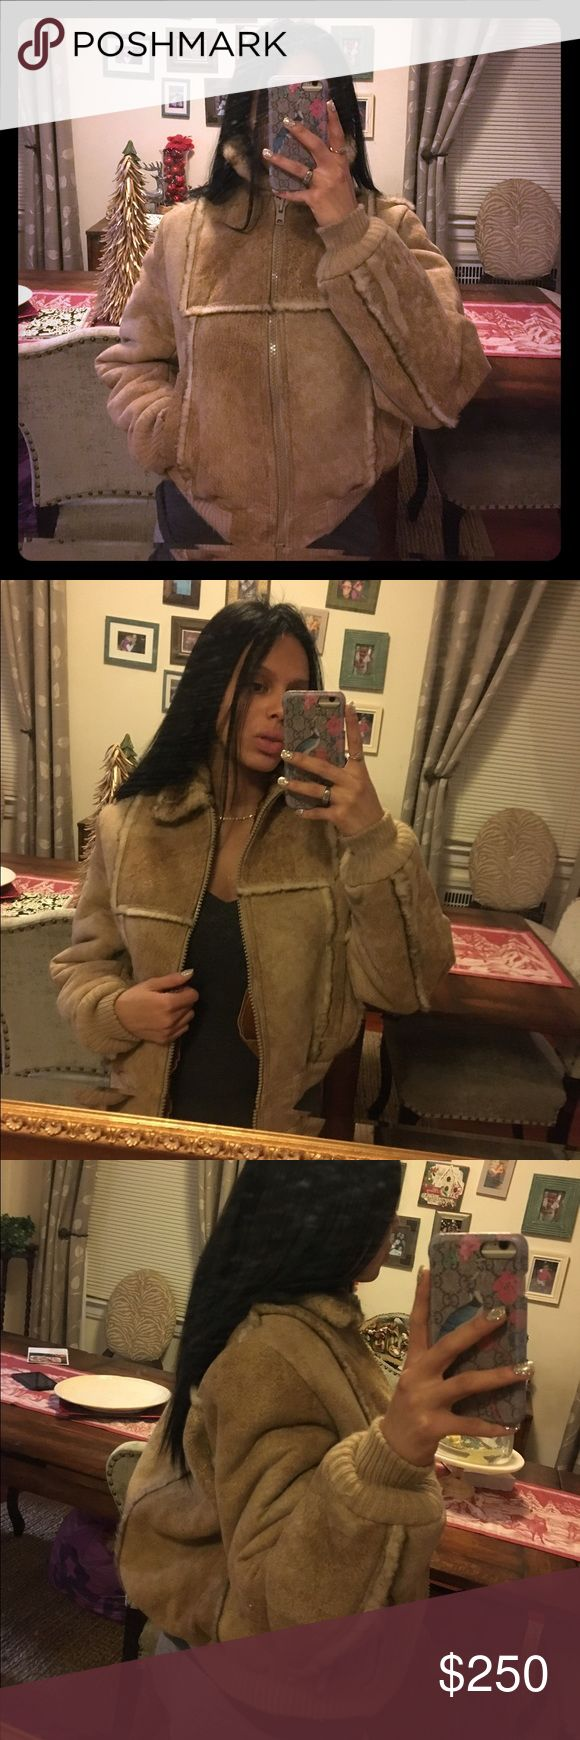 fur shearling winter bomber coat really warm for winter beautiful cool coat that can b dressed in a boho or edgy fashion. bomber style Jackets & Coats